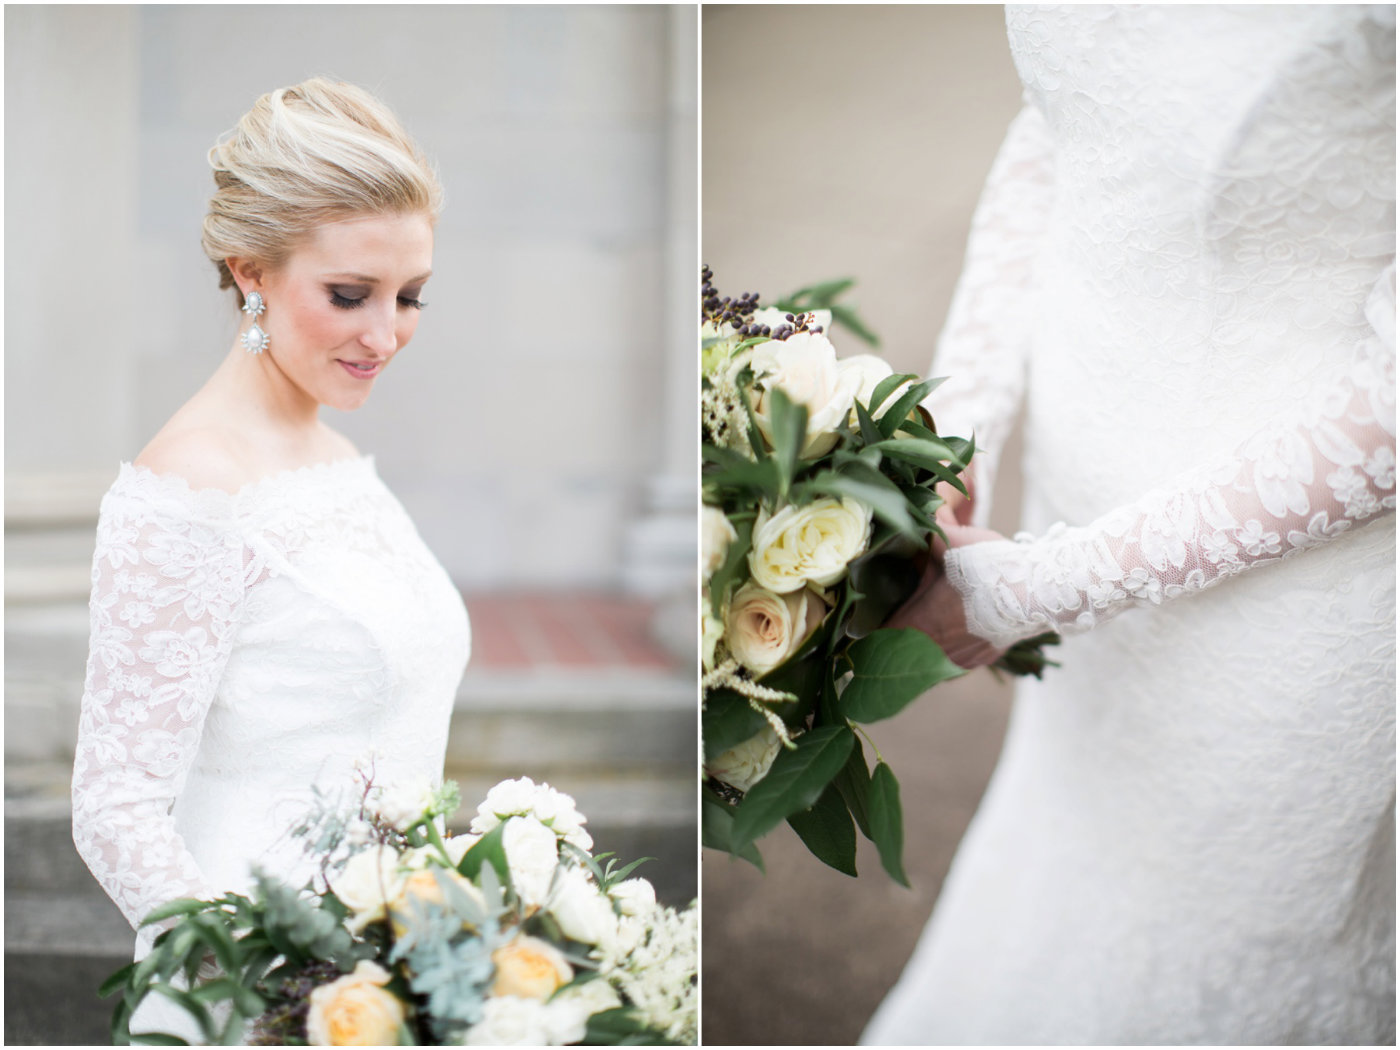 Conrad indianapolis weddings indianapolis conrad wedding bride with beautiful florals from the empty vase reviewsmspy